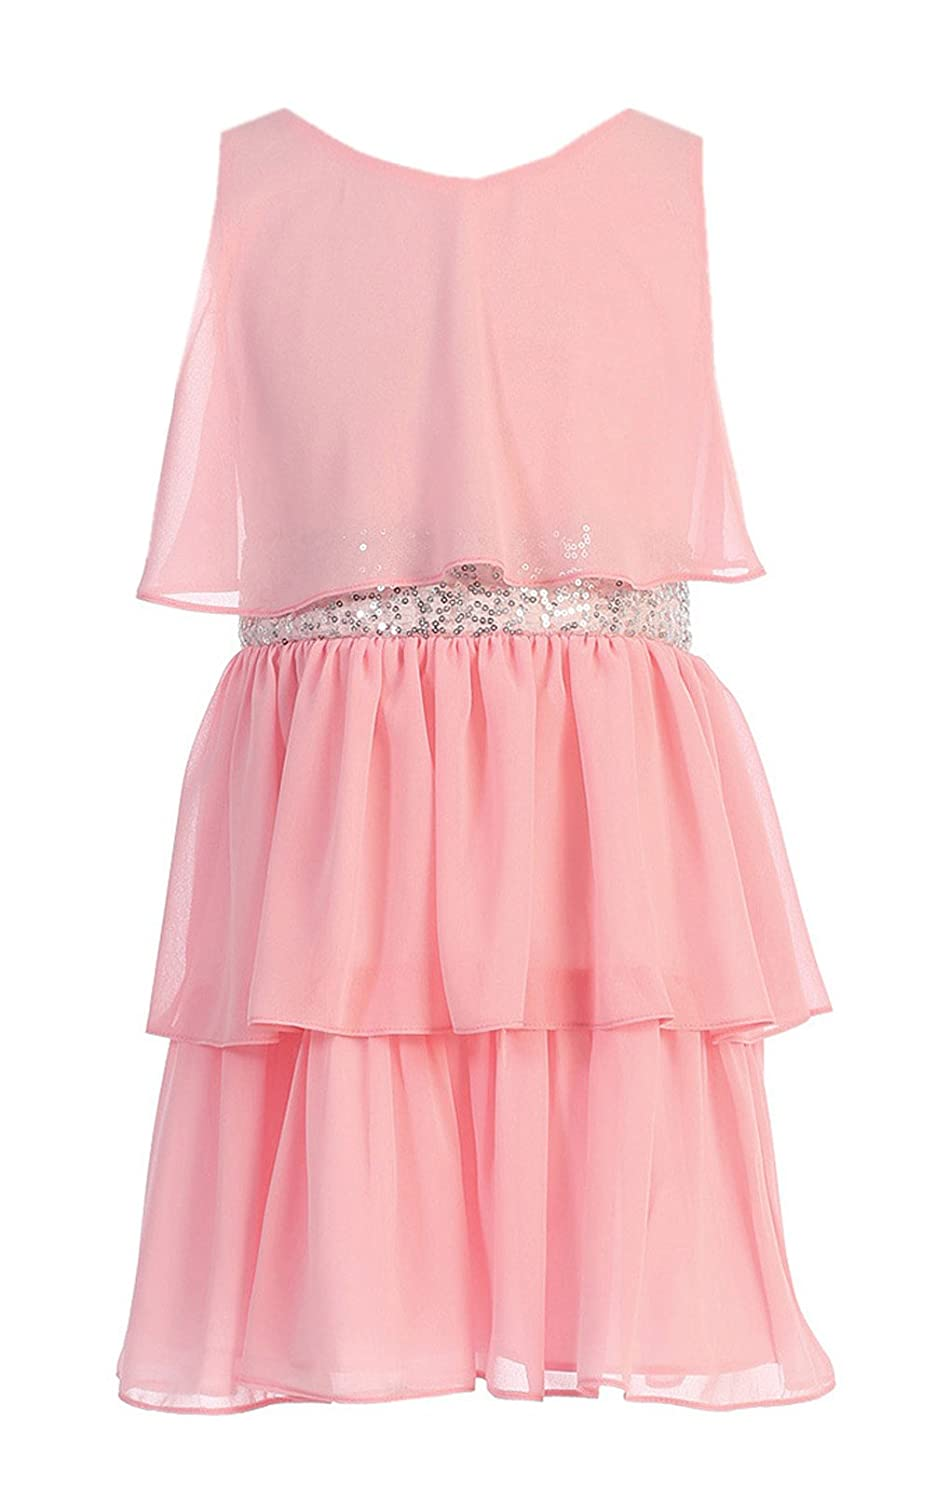 3e47b4223c37 Amazon.com: Sweet Kids Girls Sequin Belted Triple Tiered Chiffon Dress:  Clothing